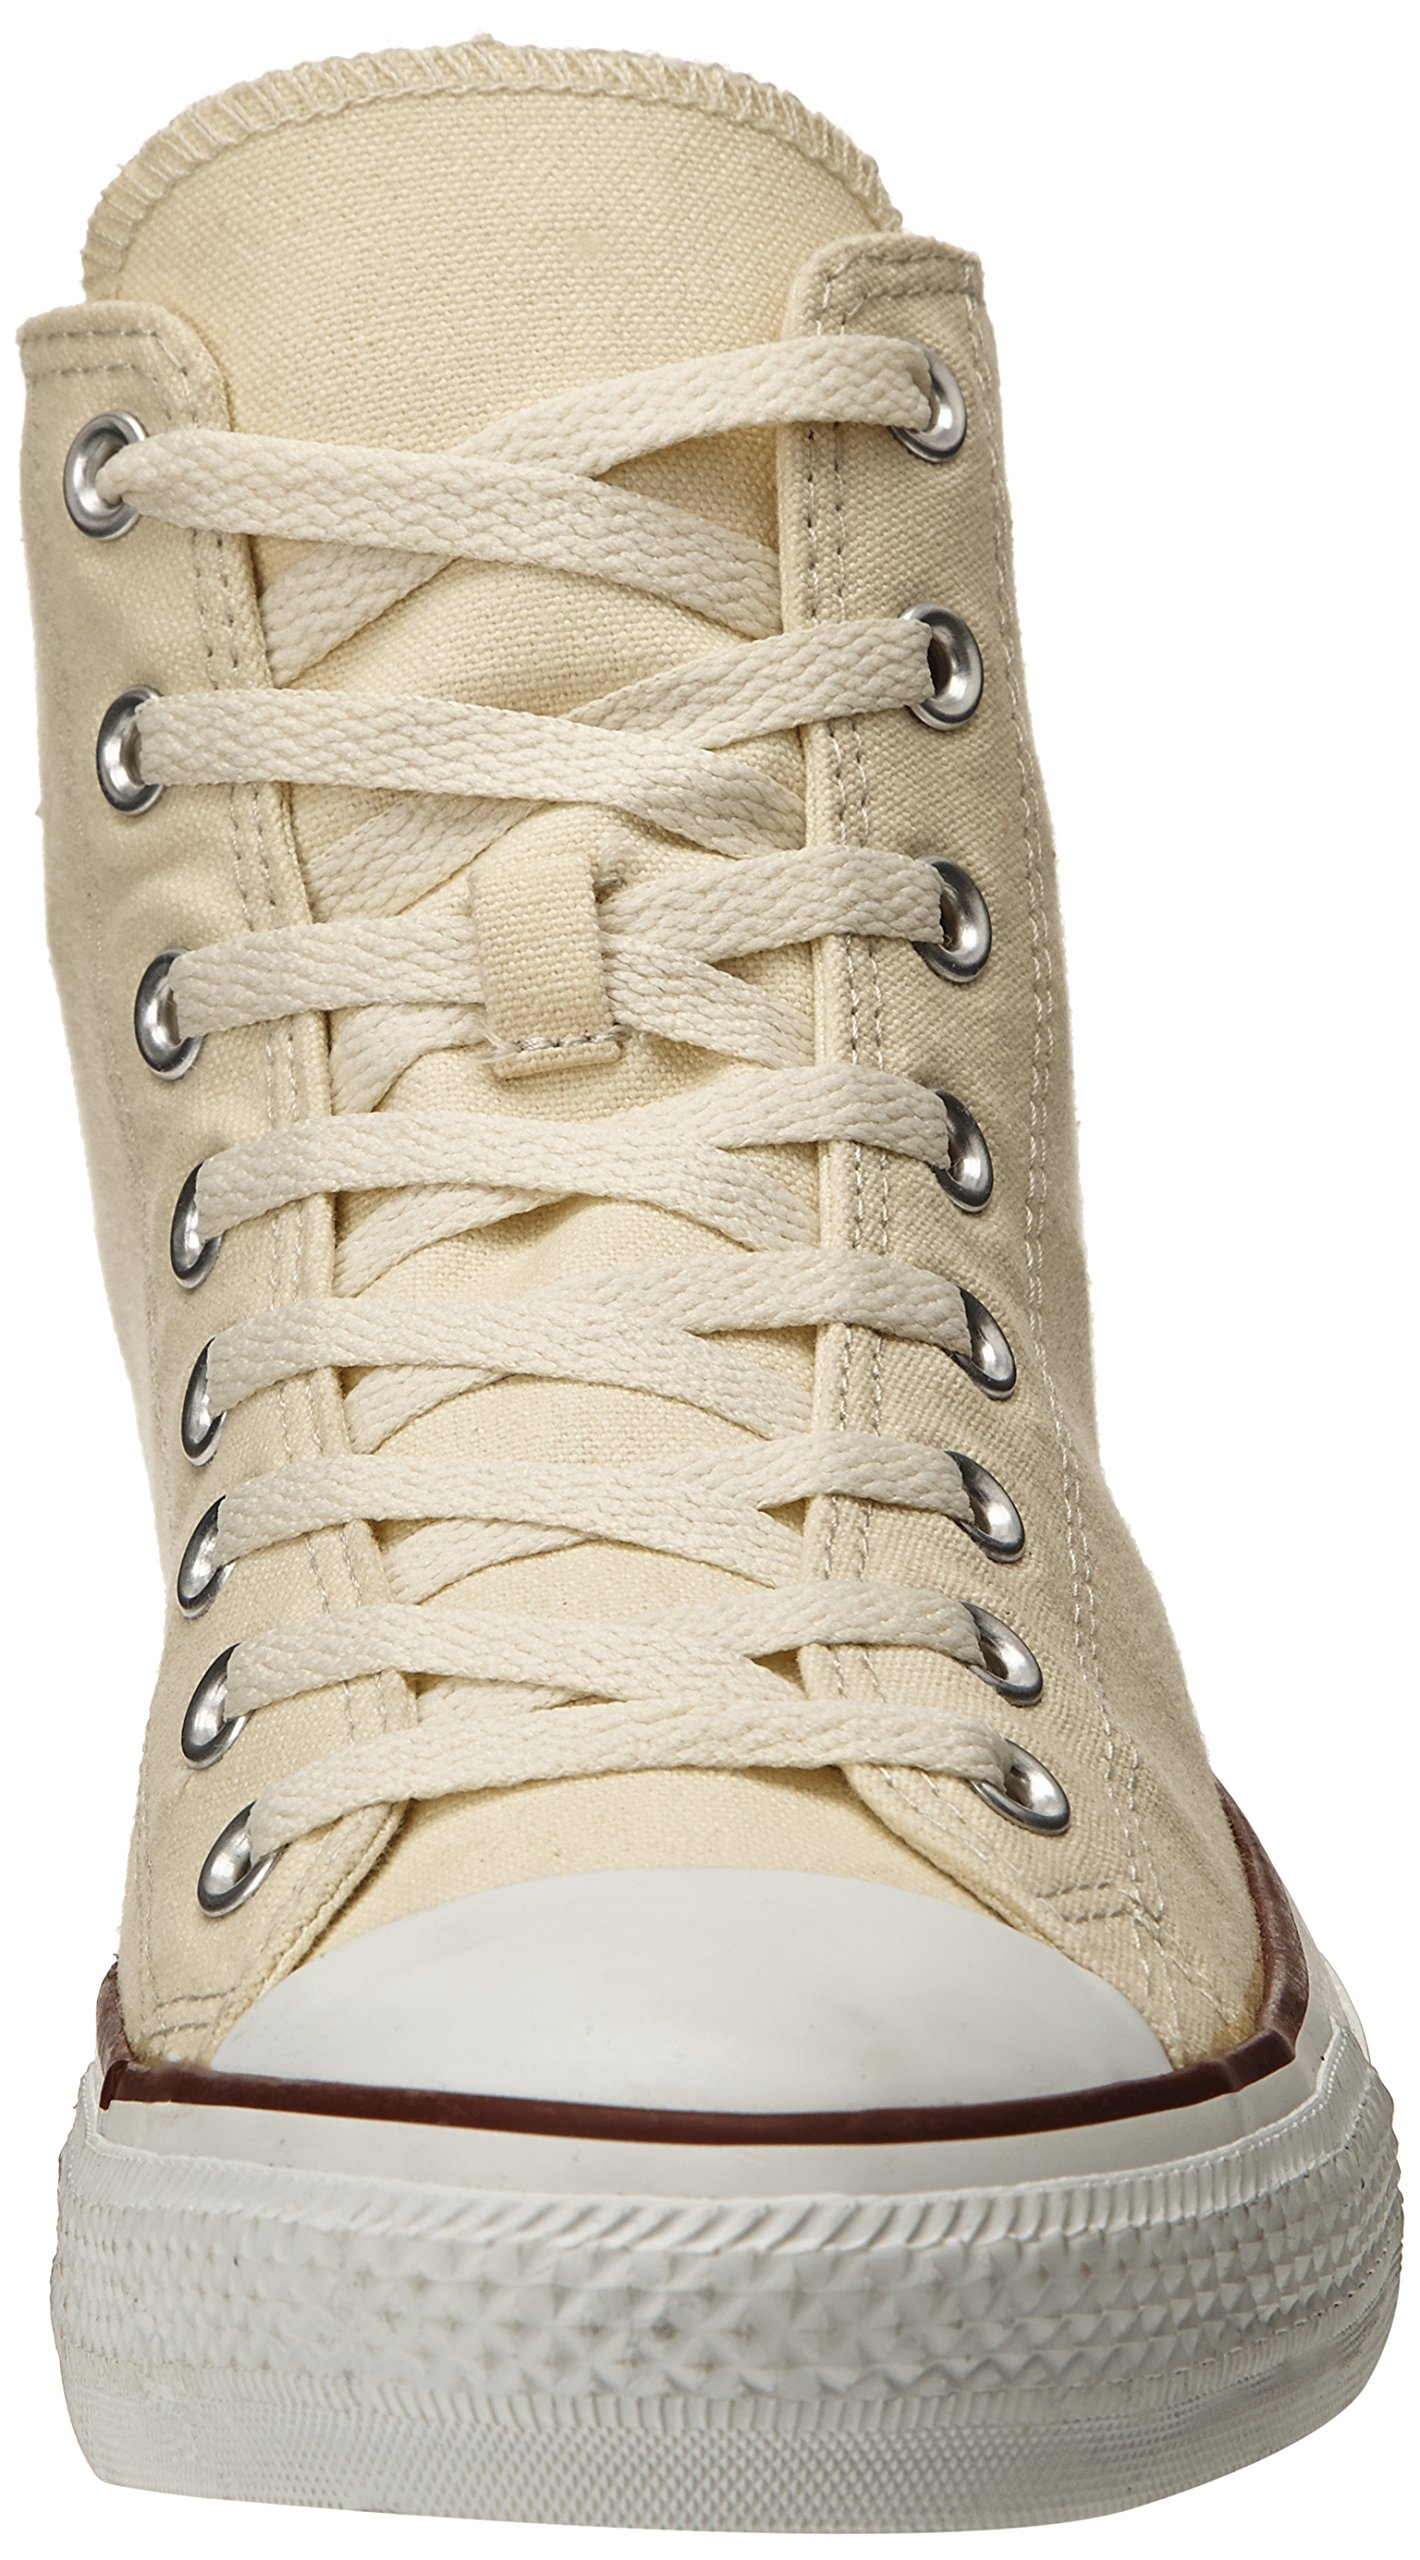 Converse Chuck Taylor All Star – Zapatillas Unisex para Adulto